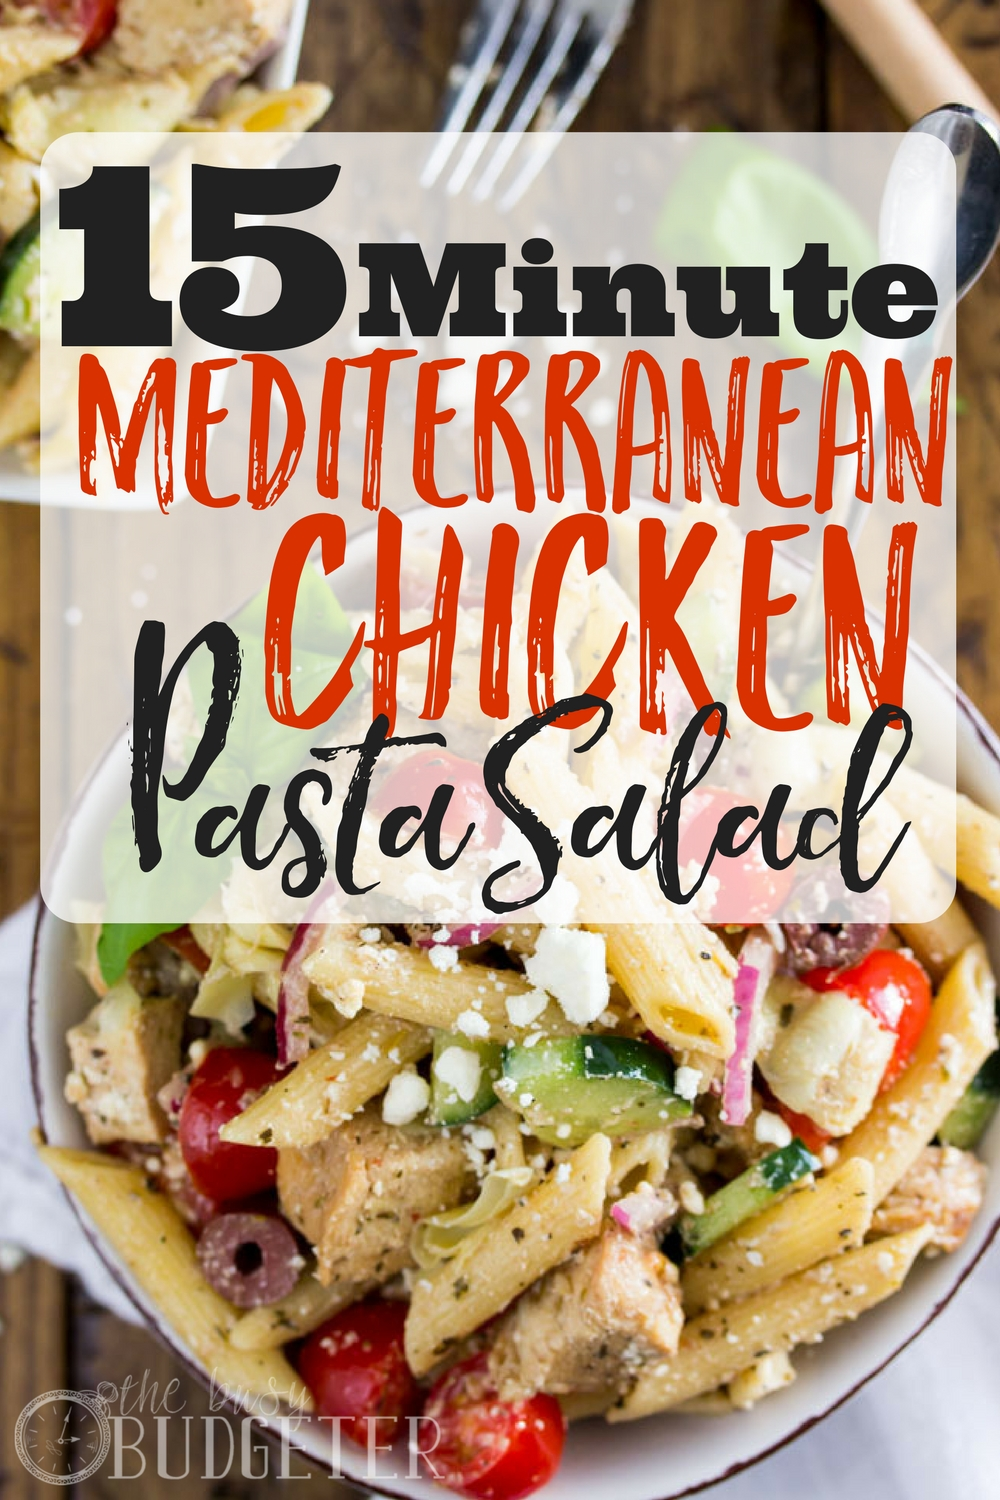 This Mediterranean Chicken Pasta Salad is simple to make -- only 15 minutes to throw together thanks to pre-cooked frozen chicken breast! Made with fresh veggies, feta cheese and a simple homemade dressing, this pasta salad is an explosion of flavors that's sure to delight your tastebuds. Mediterranean Chicken Pasta Salad I brought this Mediterranean Chicken Pasta Salad to a potluck last weekend and not a single person left without asking me for the recipe. That might sound like an exaggeration, but it's not. Literally everyone wanted the recipe. The giant Rubbermaid container that I brought might as well have been licked clean, there wasn't a crumble of feta left in the place. I'm not trying to brag, this pasta salad is just that good. It's made with pre-cooked frozen chicken breast, fresh veggies, and a homemade salad dressing that is as delicious as it is simple. So let's walk through the steps so that you can get off the computer and get to making your very own batch of Mediterranean Chicken Pasta Salad.